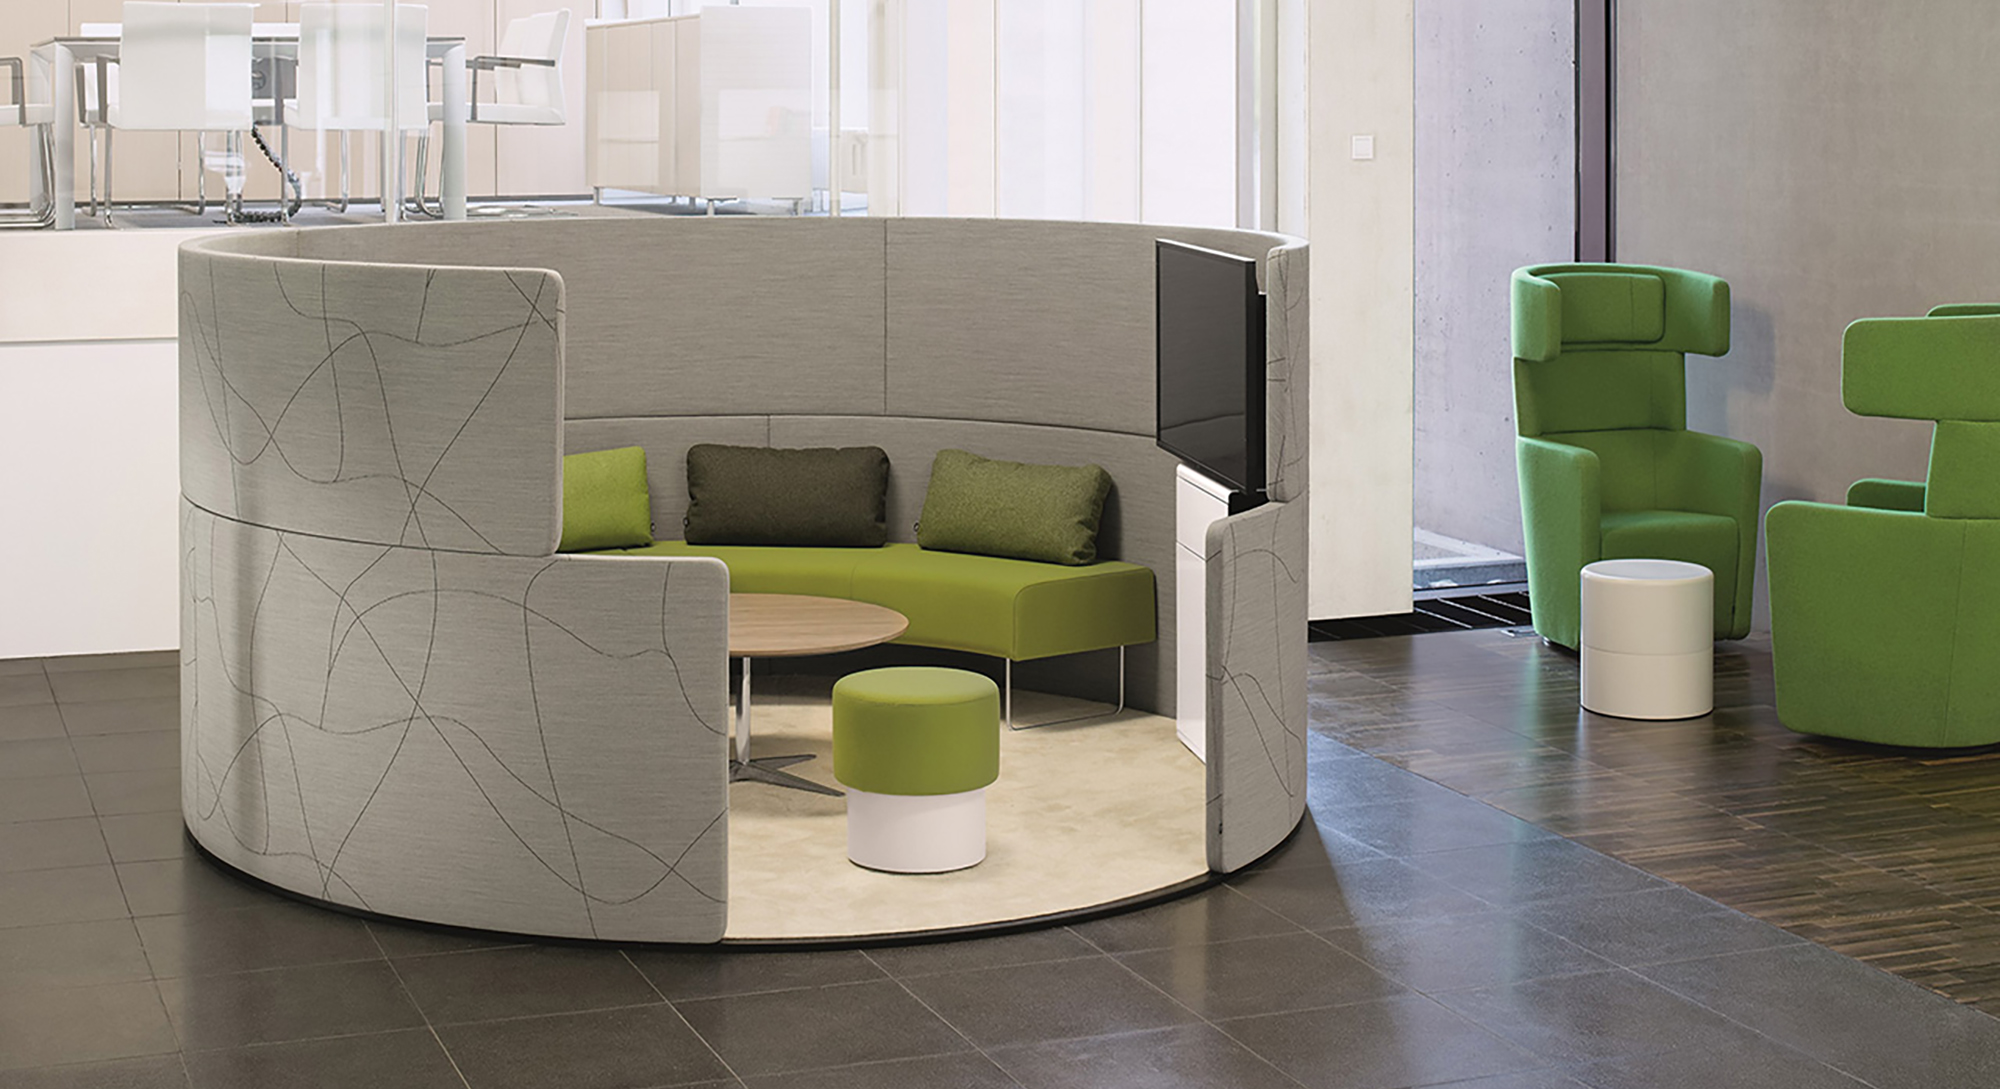 Designed Collaborative pods for business and education areas